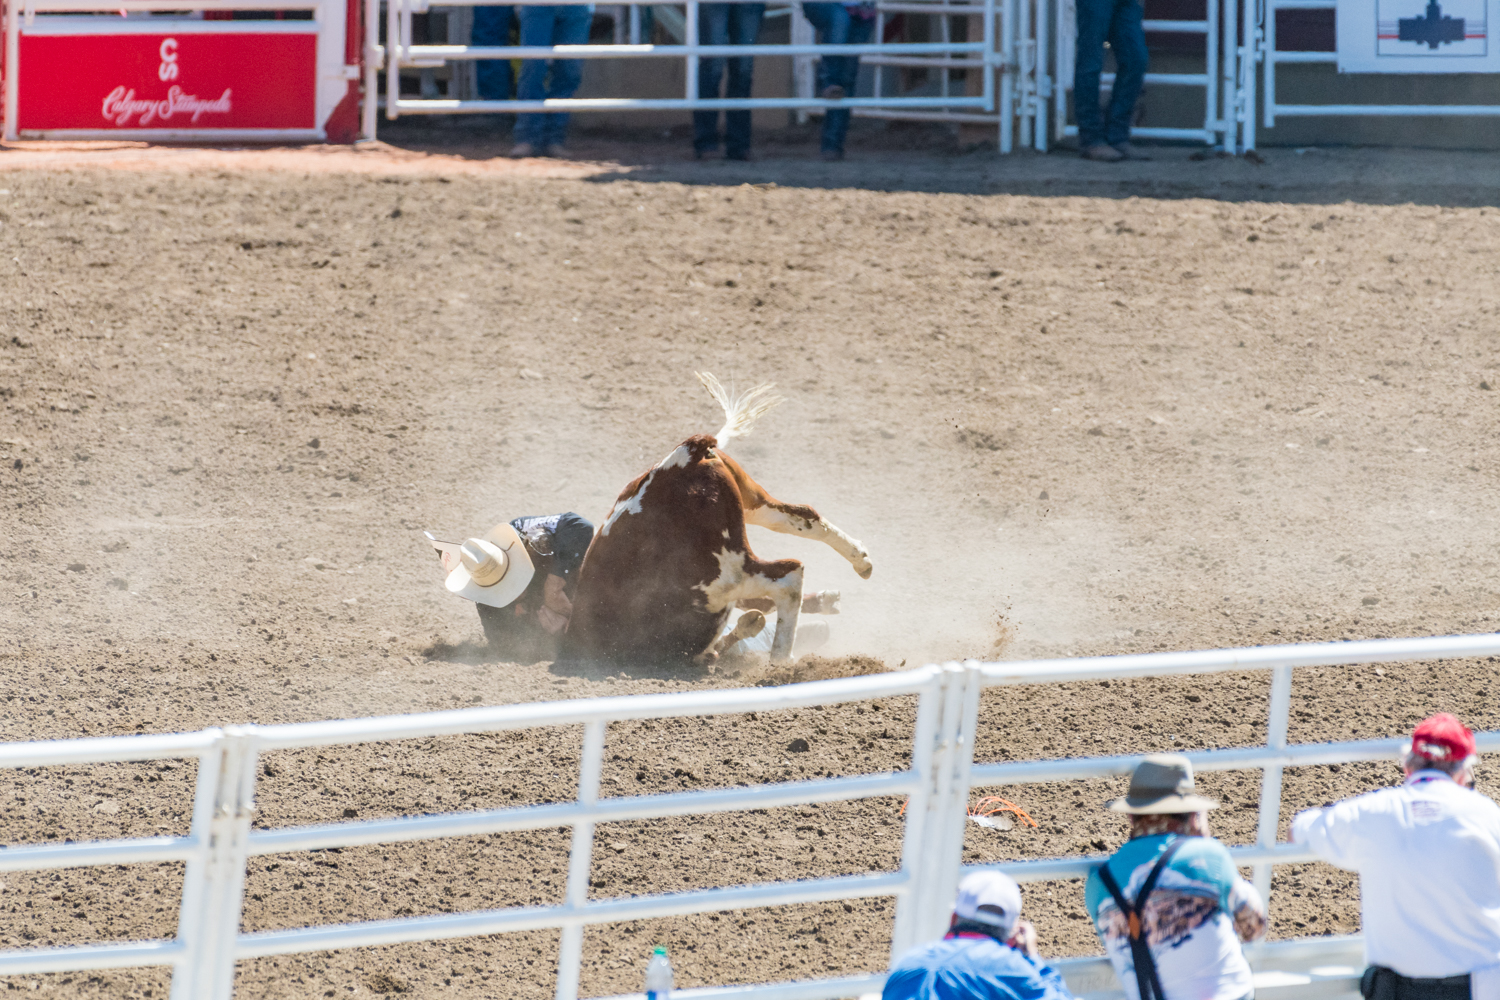 Some cowboys were able to knock the bulls straight down off the horse, others needed to use a bit more persuasion.